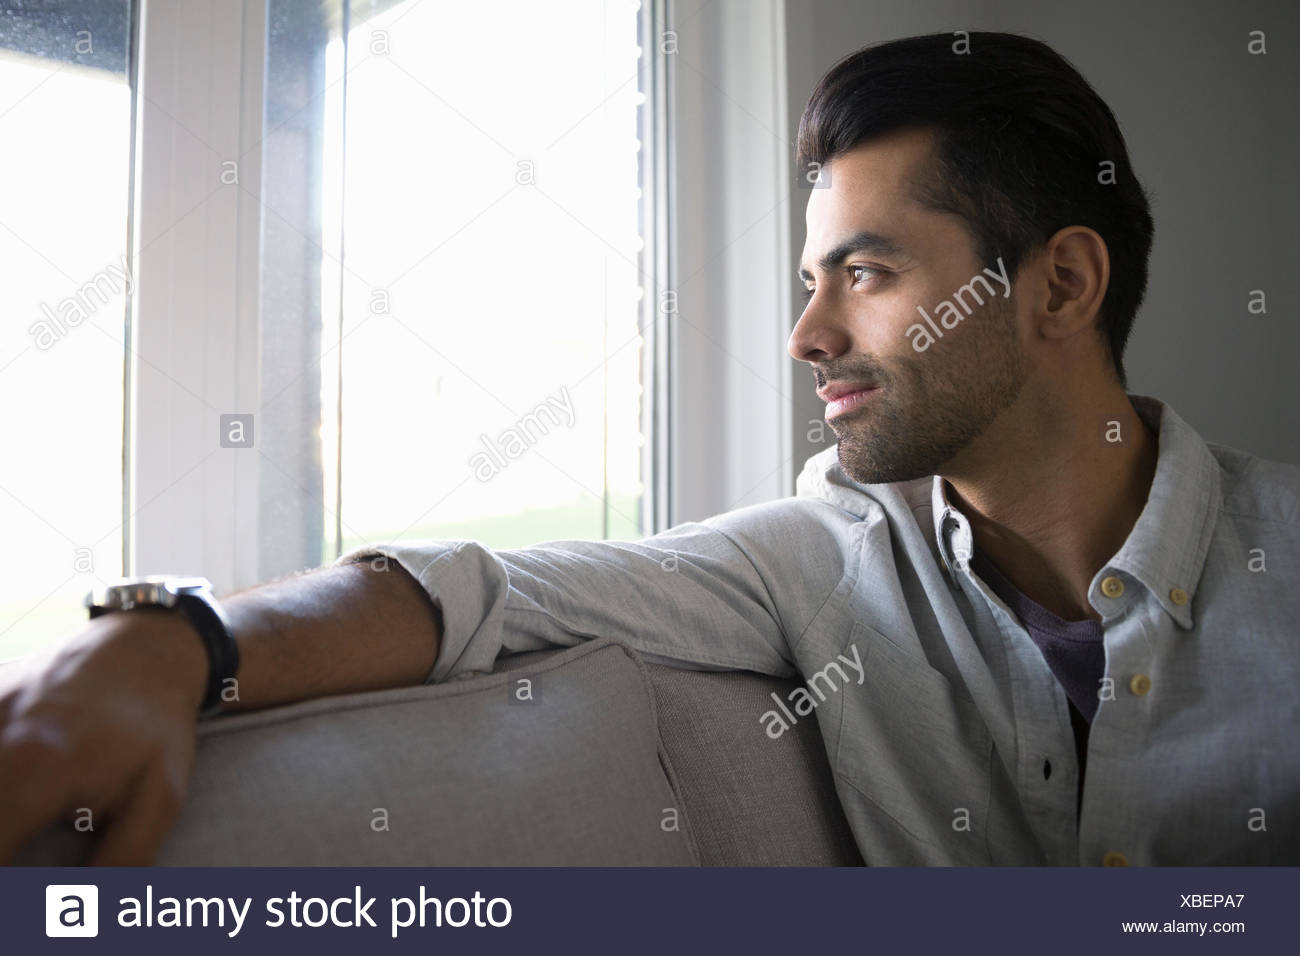 Pensive man on sofa looking out window - Stock Image